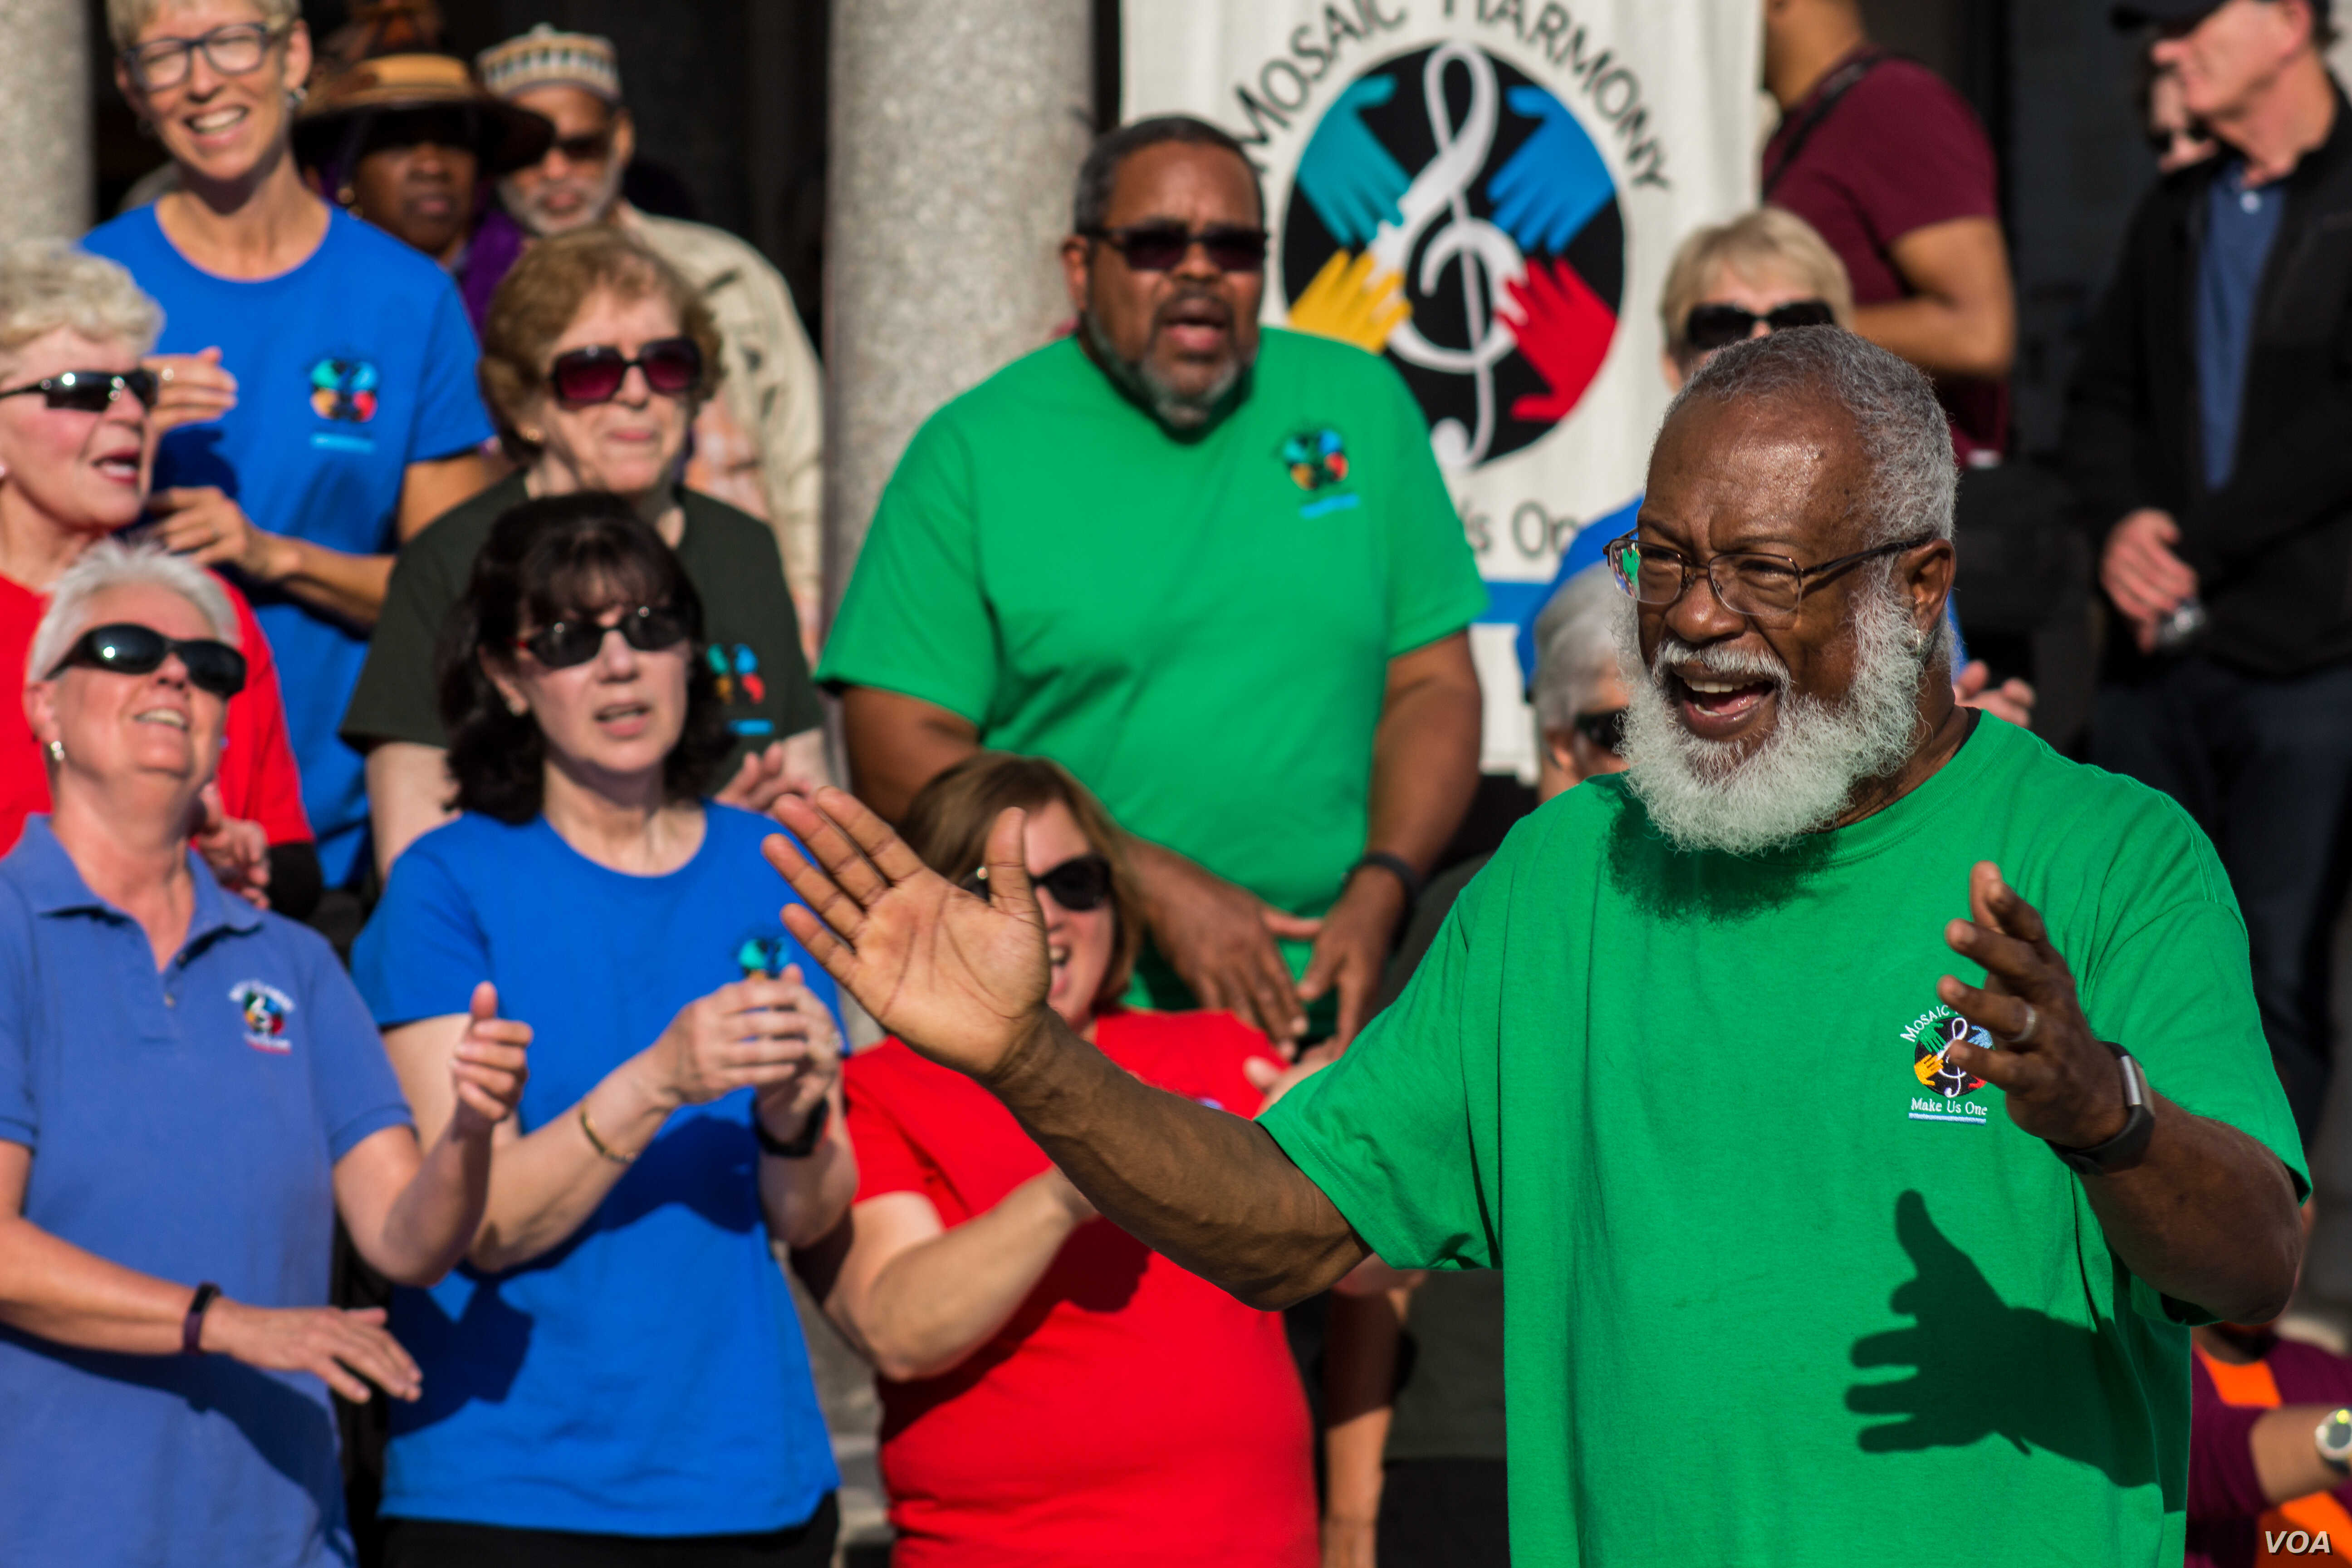 Music director David North conducts interfaith singing group Mosaic Harmony at closing ceremony for Unity Walk 2017 on Sunday 09/10/17 in the U.S. capital. (B. Bradford/VOA)